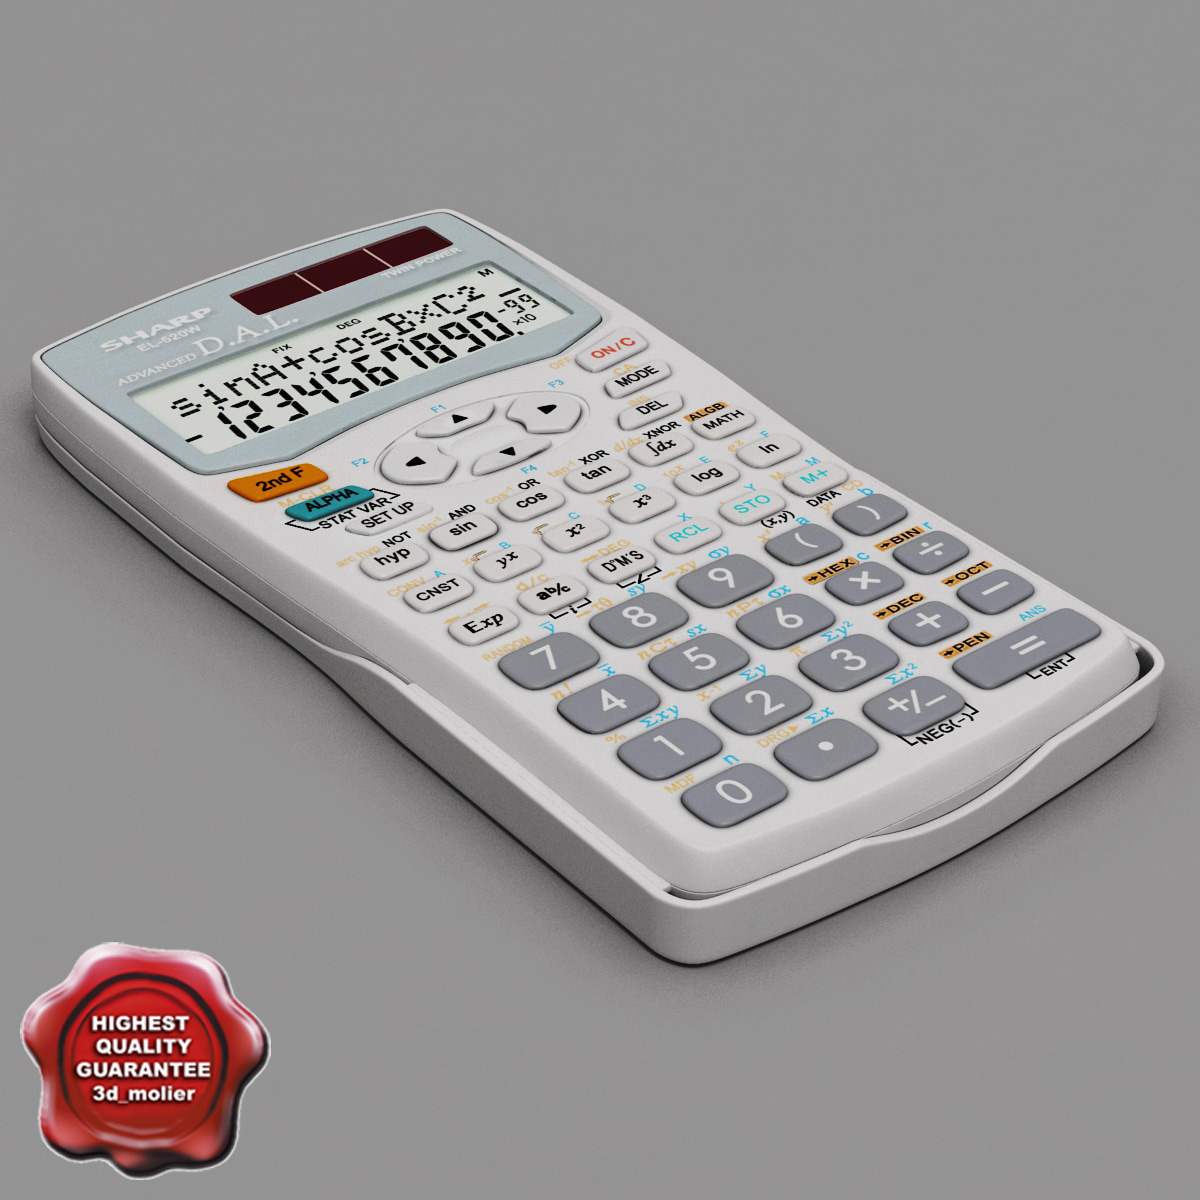 Calculator_Sharp_EL-520w_White_00.jpg